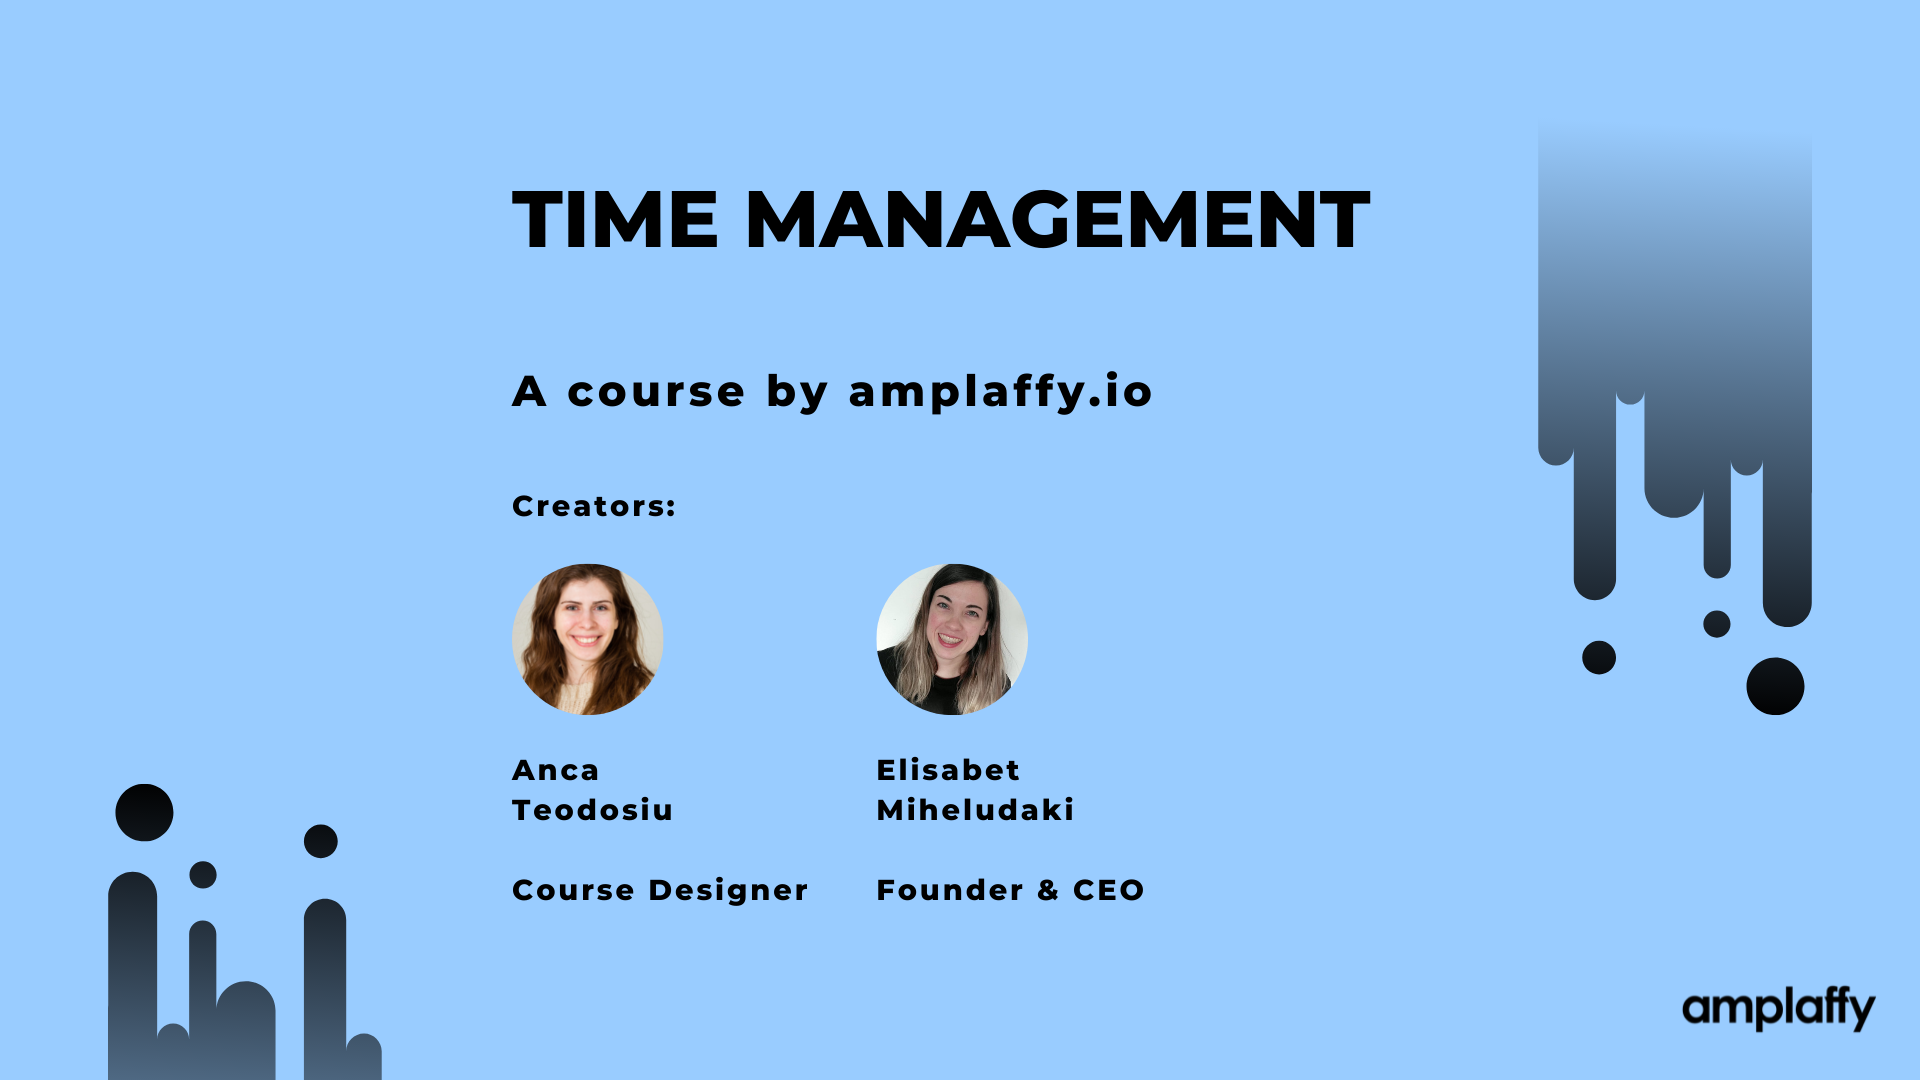 1.Introduction to time management course